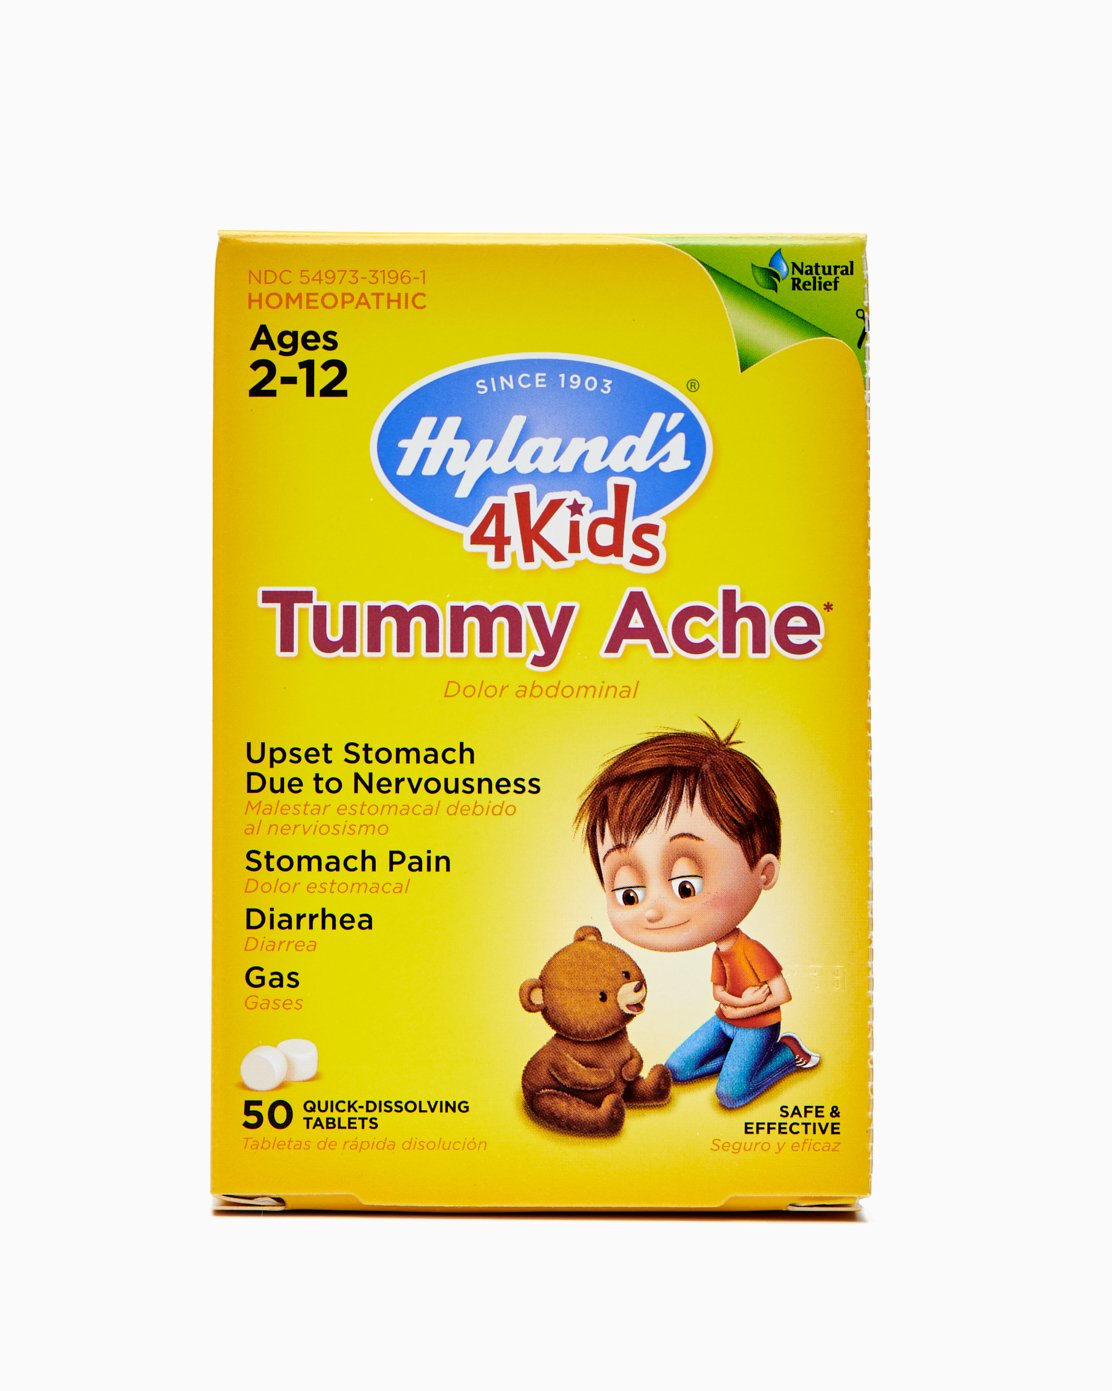 Hyland's 4 Kids Tummy Ache Tablets, Natural Relief of Upset Stomach, Diarrhea and Gas for Kids, 50 Count